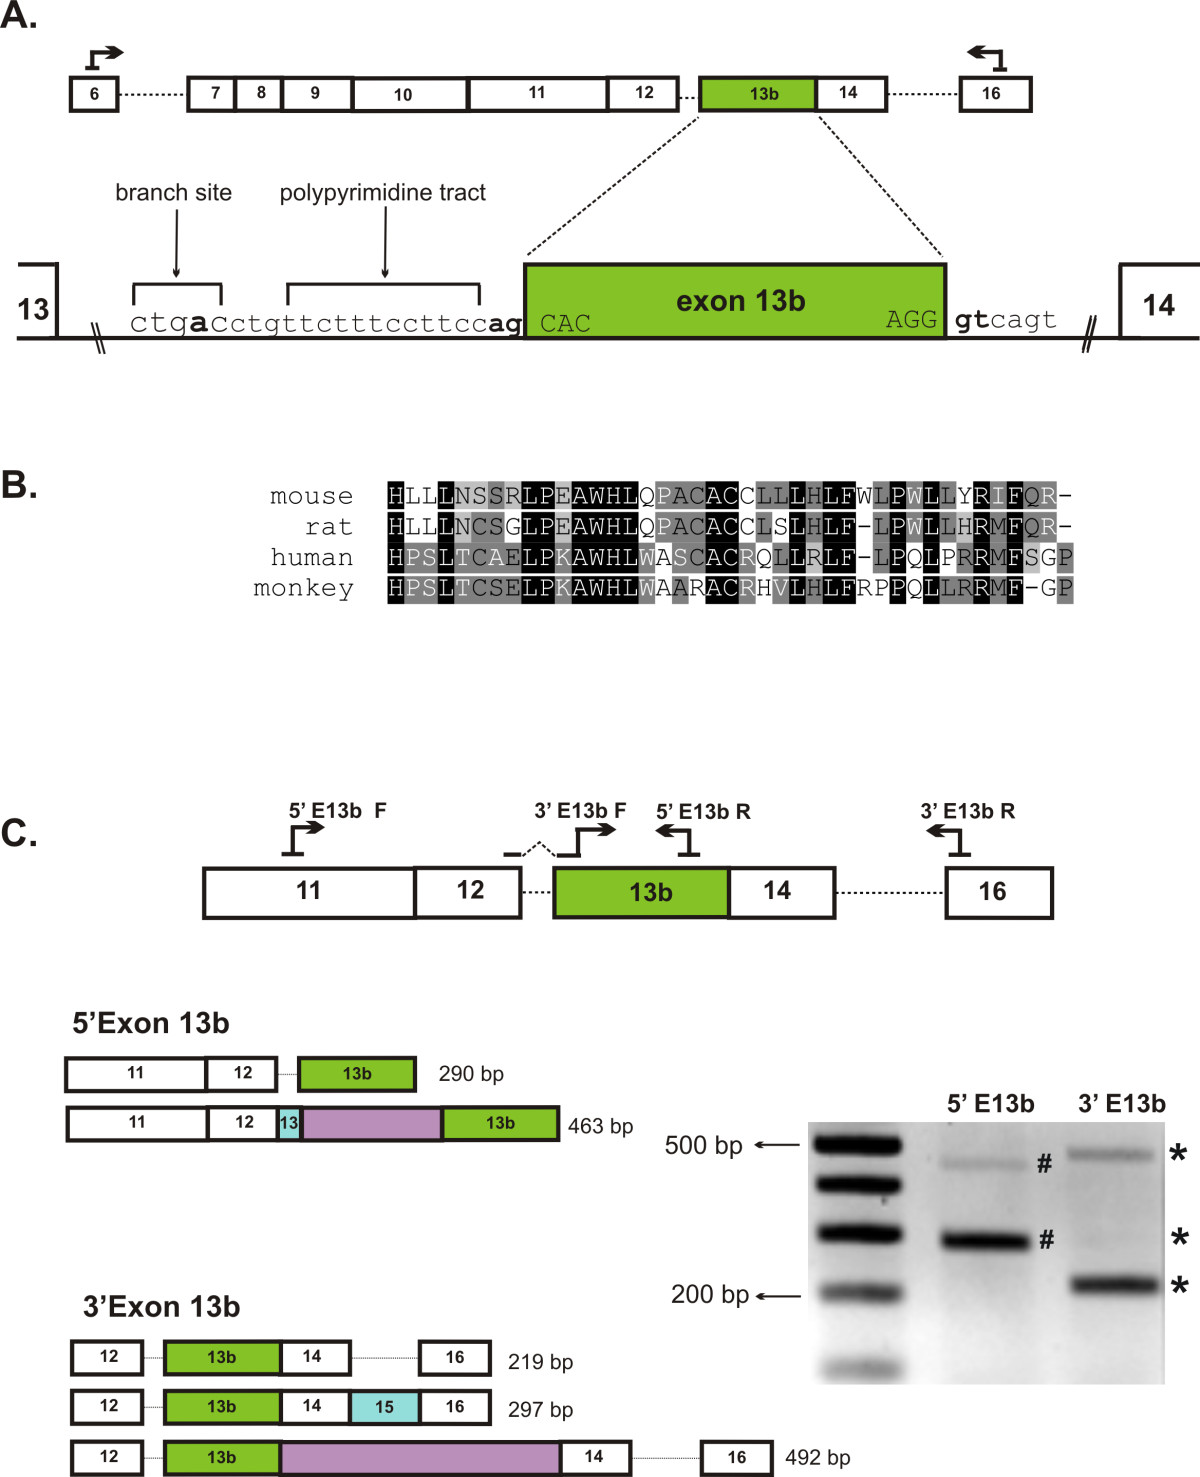 http://static-content.springer.com/image/art%3A10.1186%2F1471-2199-12-35/MediaObjects/12867_2011_Article_589_Fig4_HTML.jpg